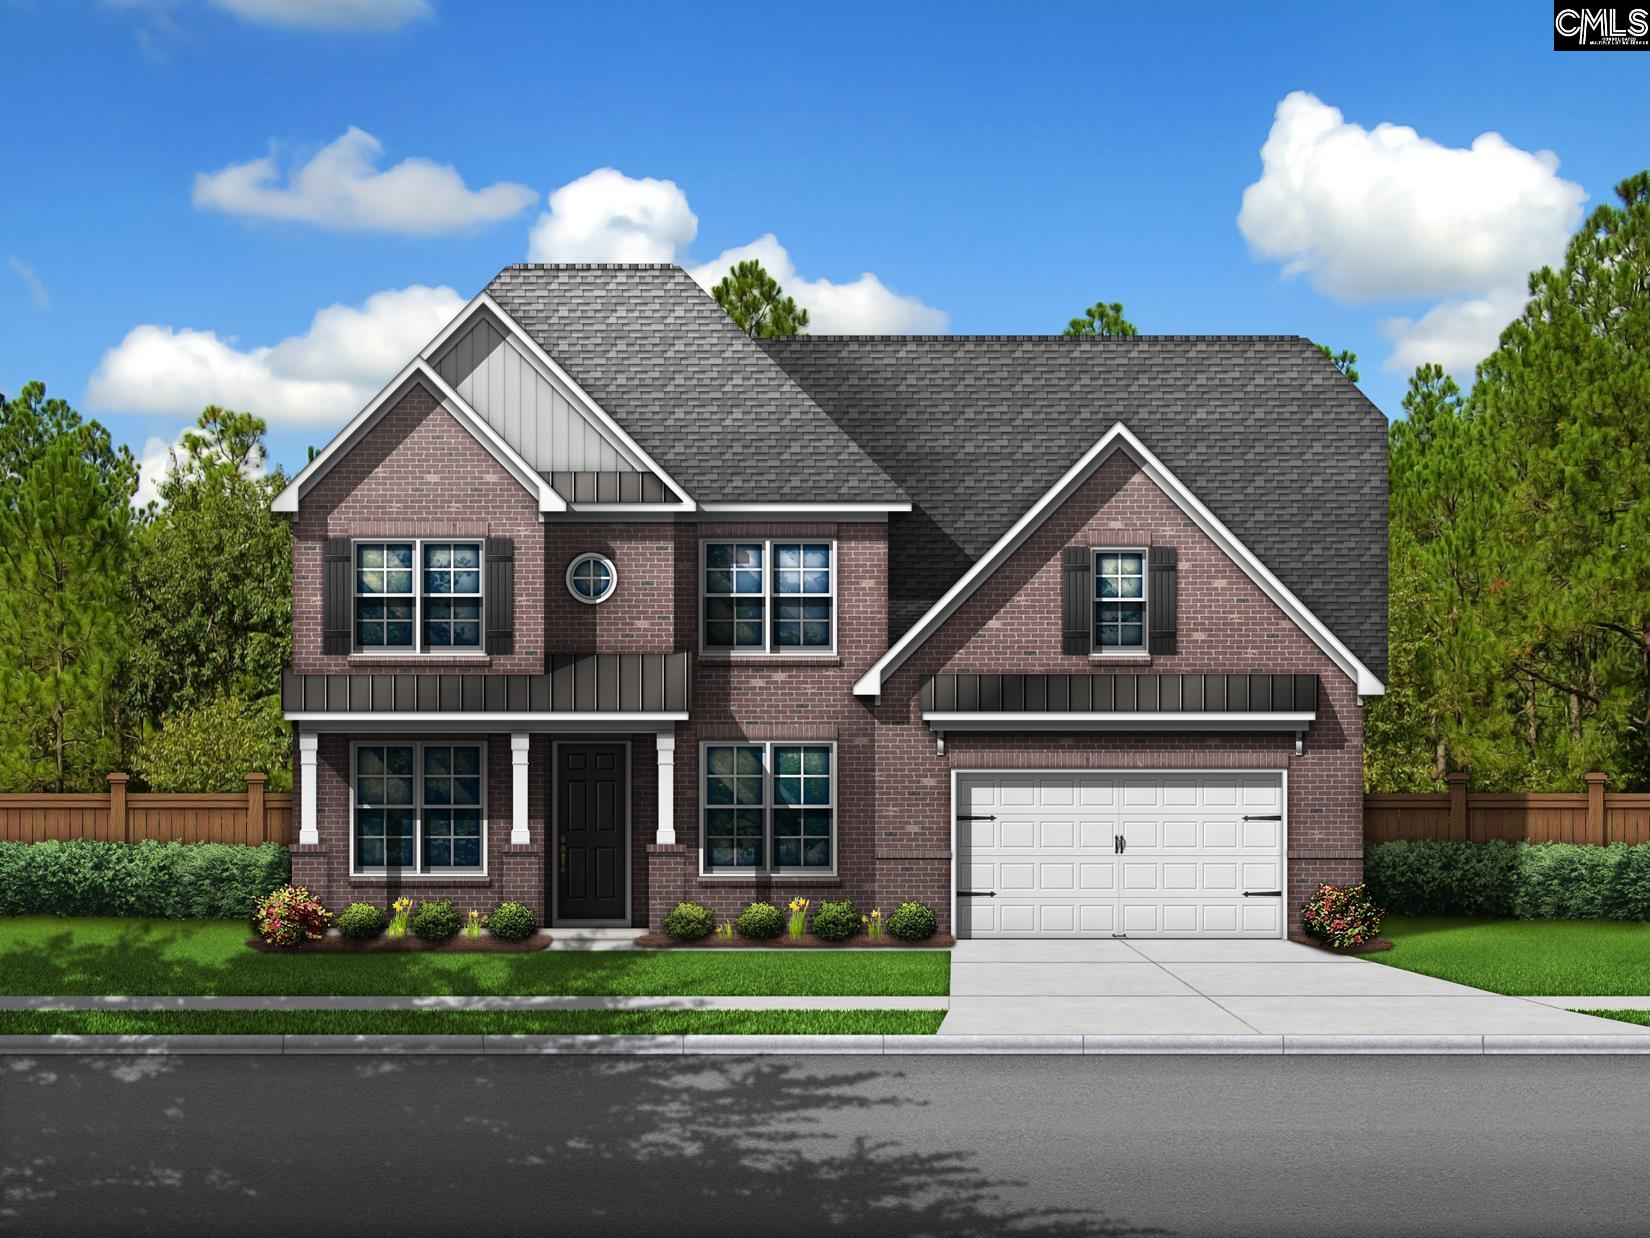 118 Crystal Manor #04 Irmo, SC 29063